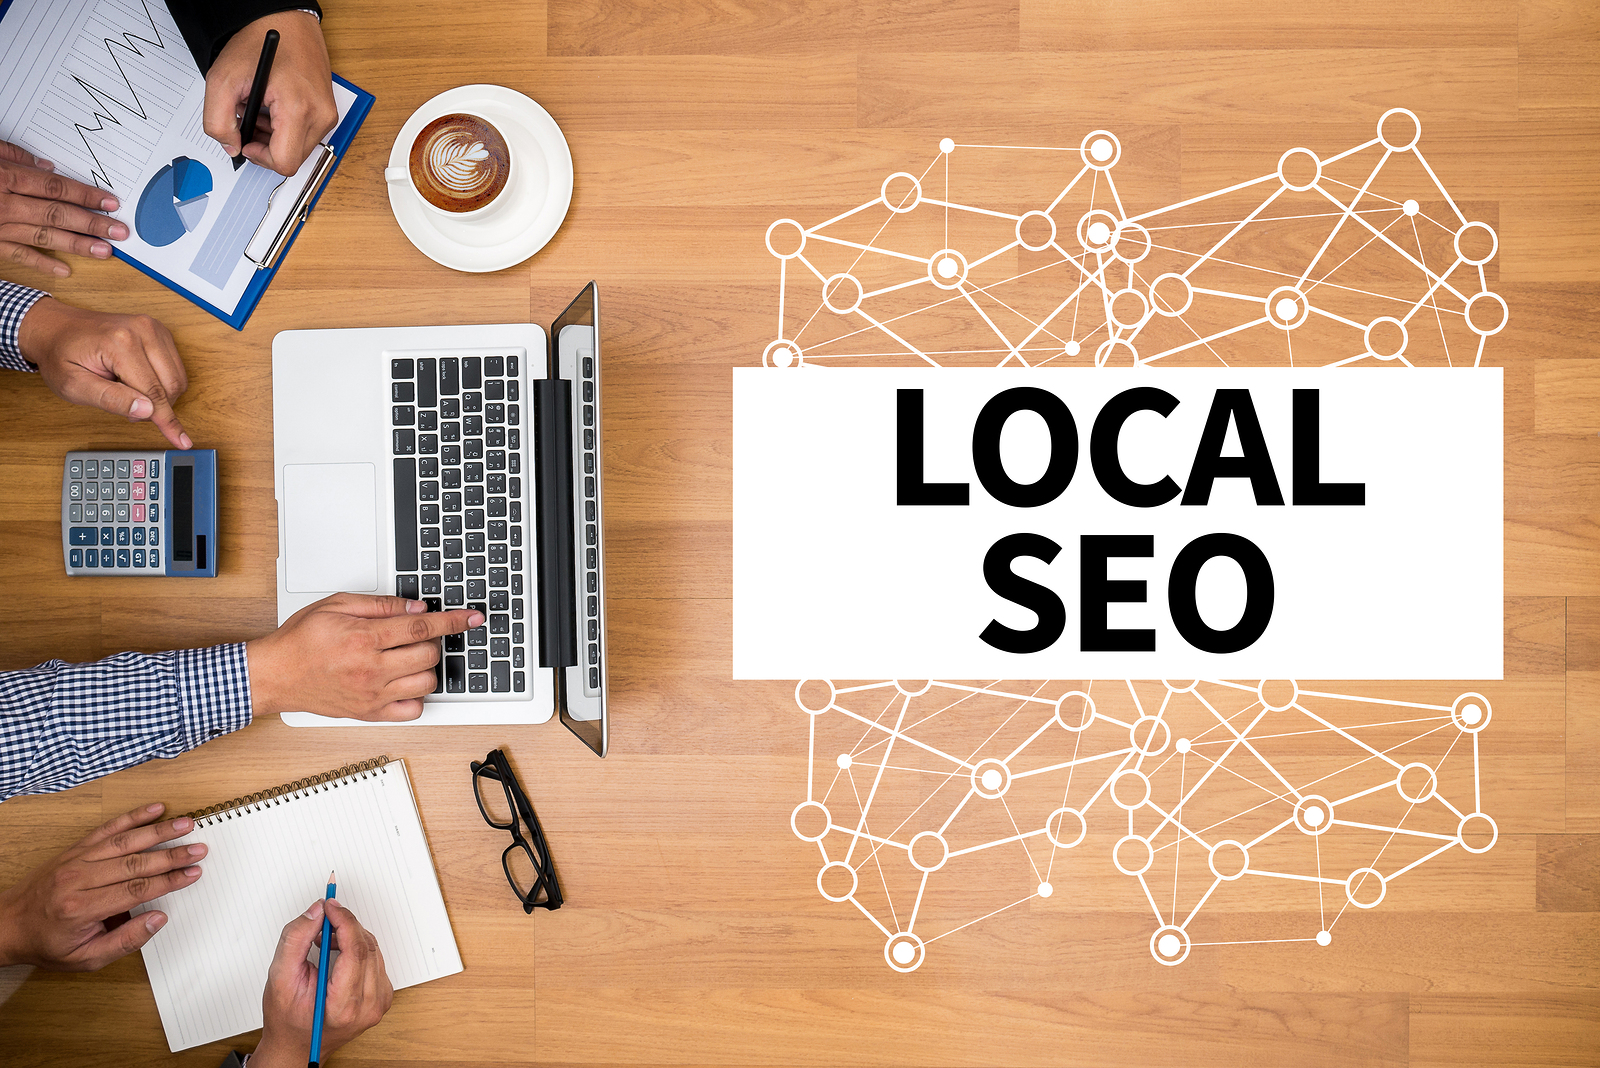 Get the local SEO Melbourne service with help of experts - Platinum SEO